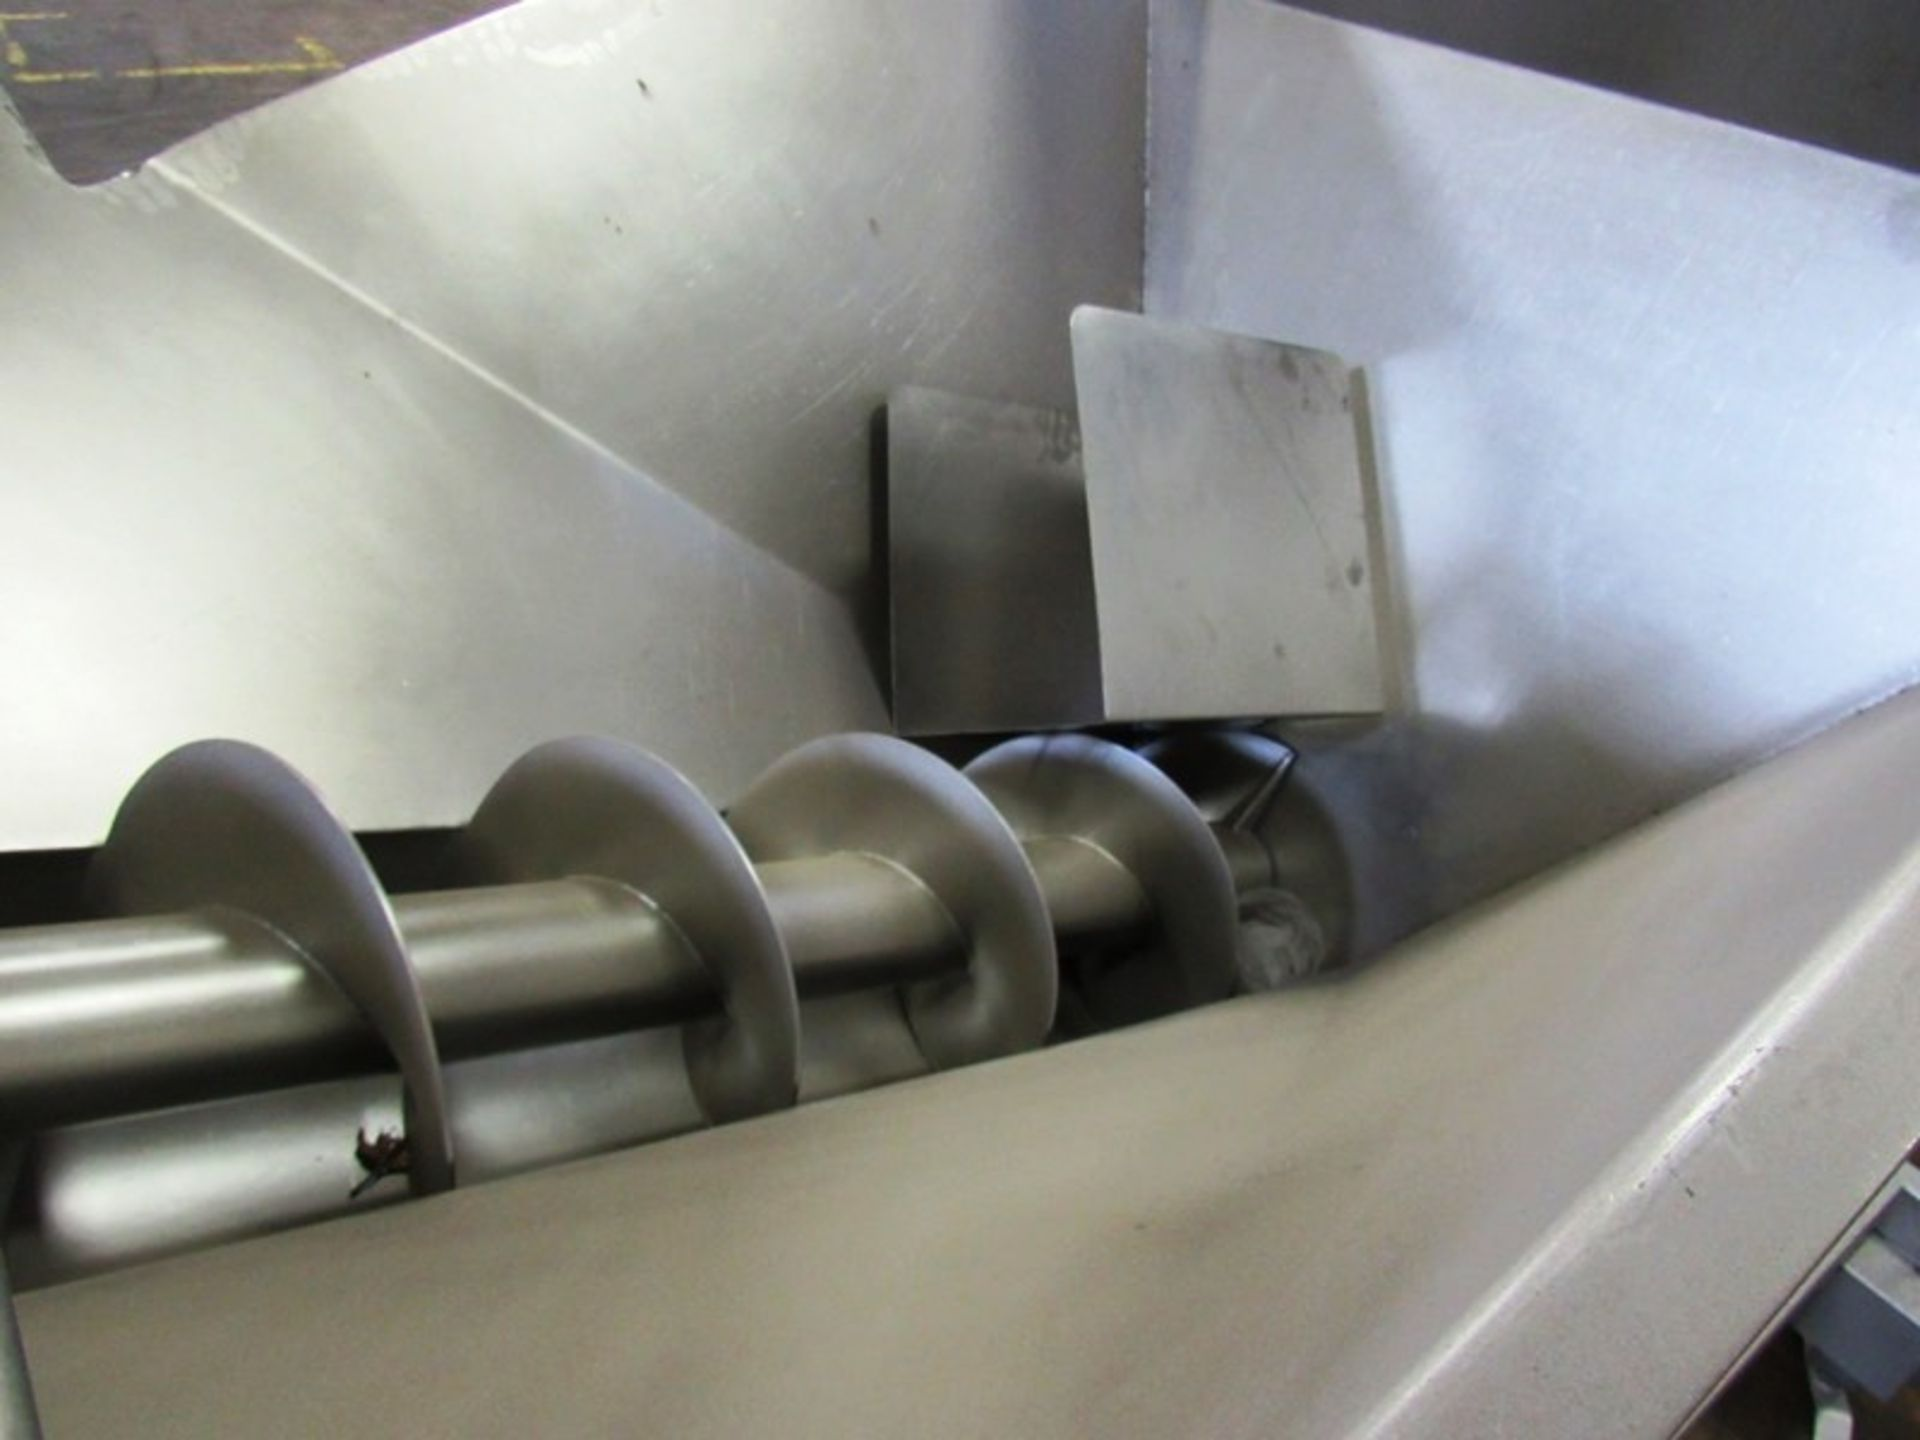 """Stainless Steel Screw Loader, 16"""" Dia. X 8' L stainless steel screw, 5' W X 5' L load hopper, 15 h. - Image 5 of 7"""